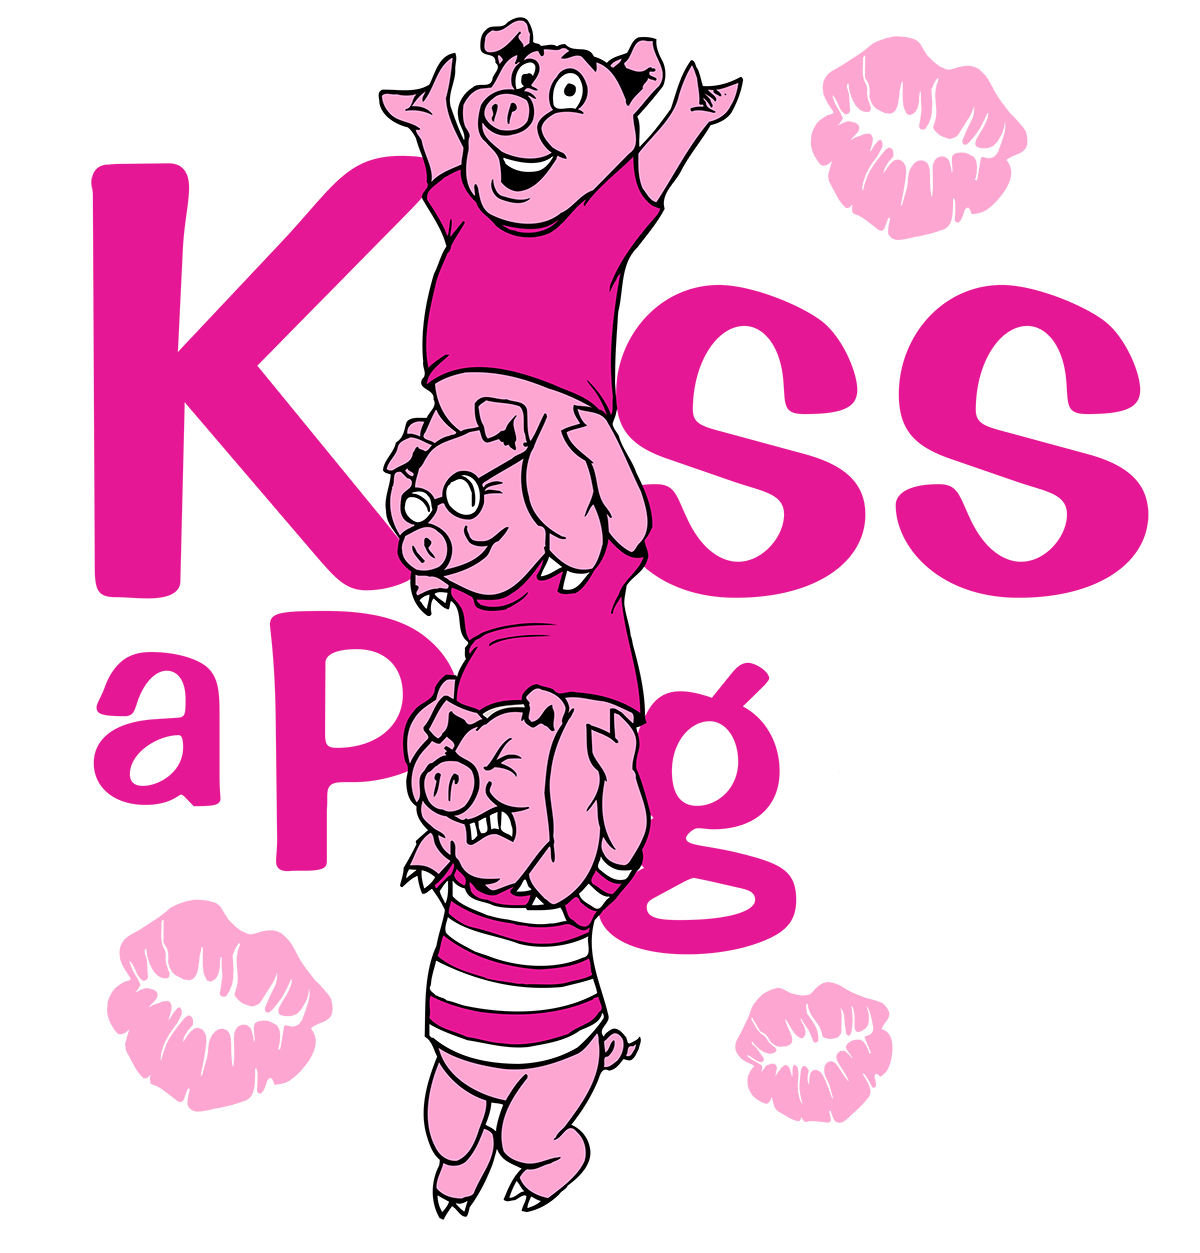 Race clipart pig. Kiss a md state